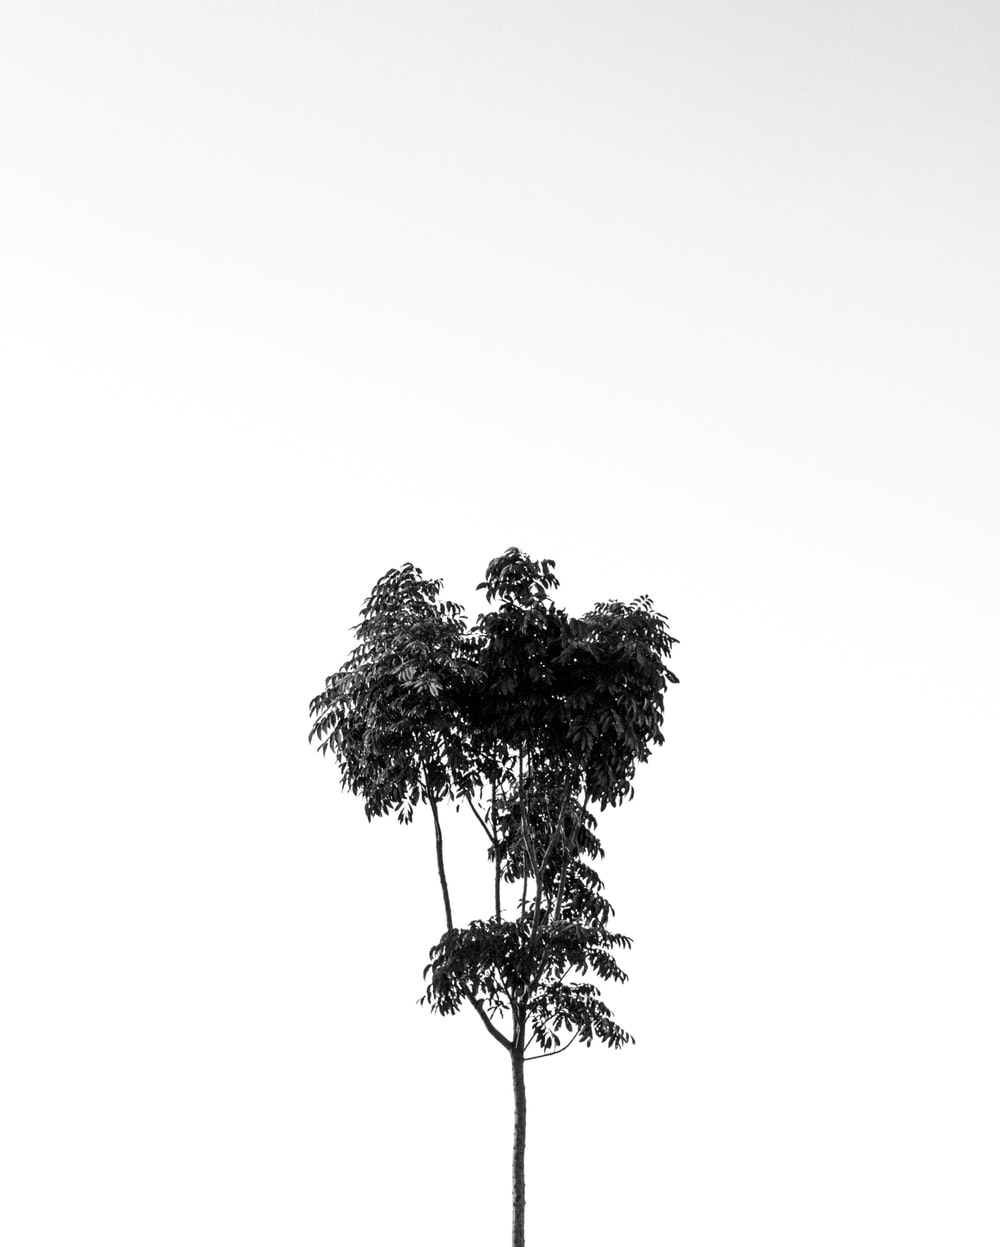 grayscale photo of tree